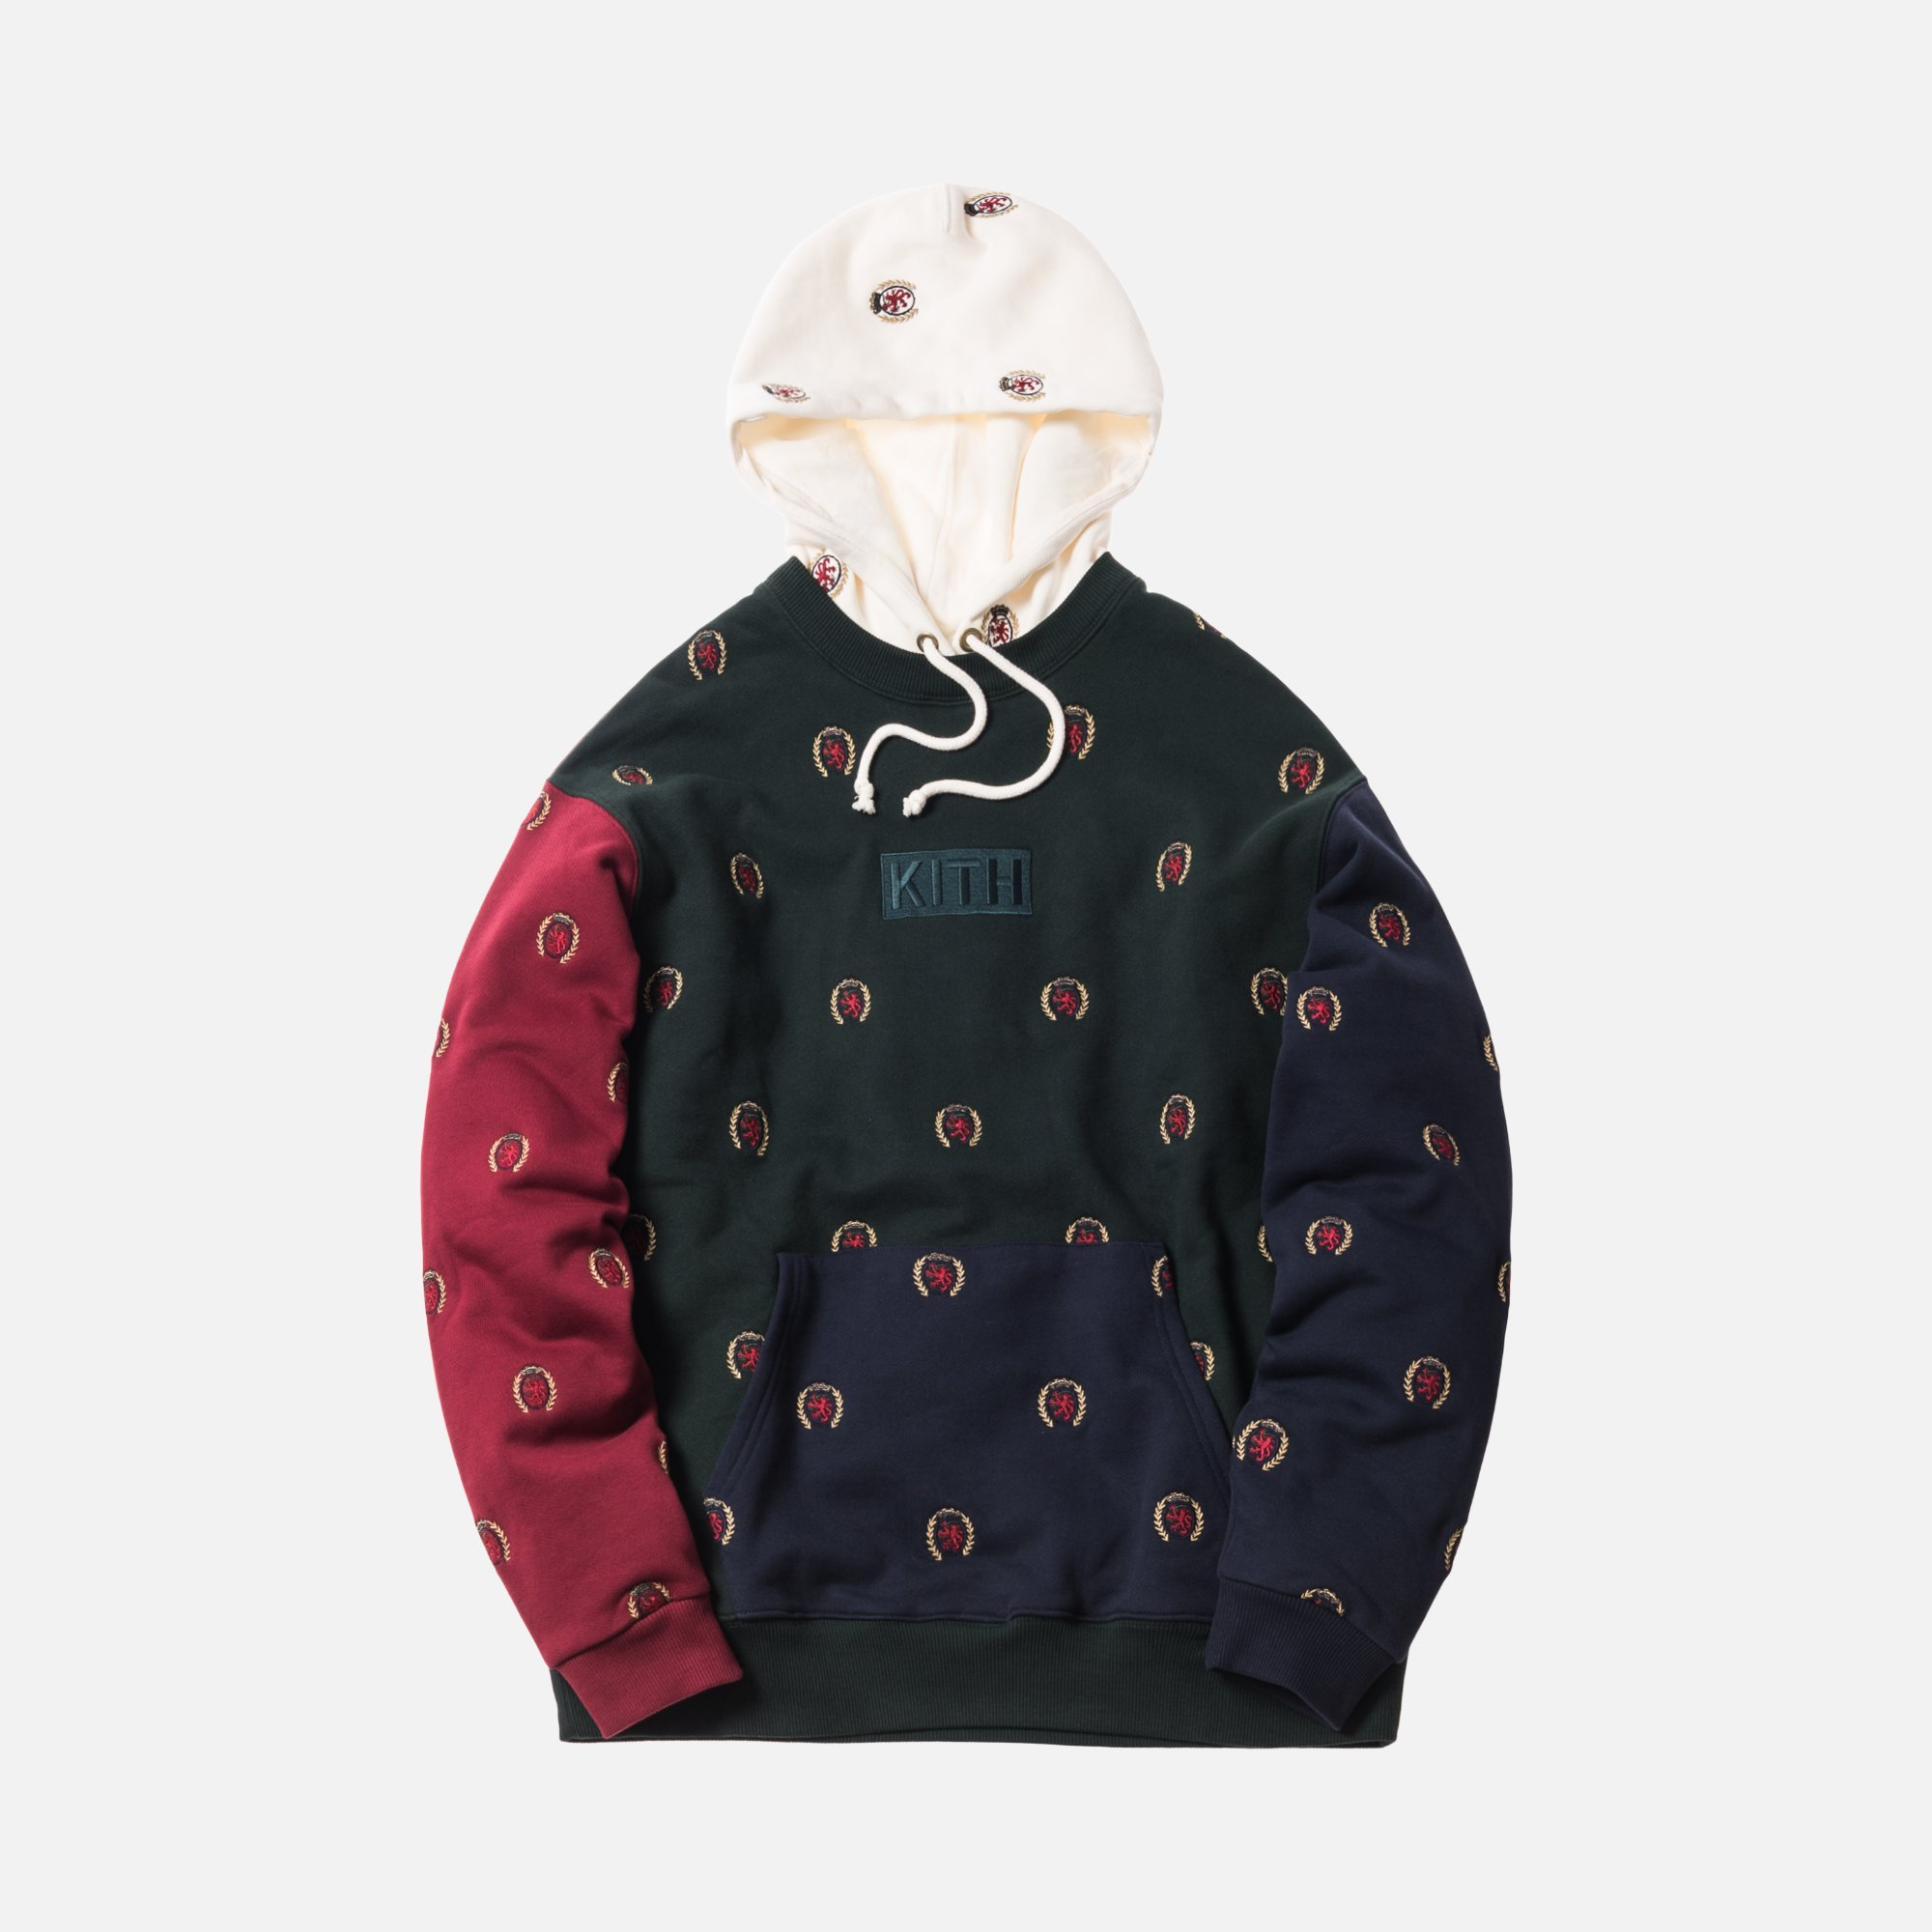 tommy hilfiger and kith